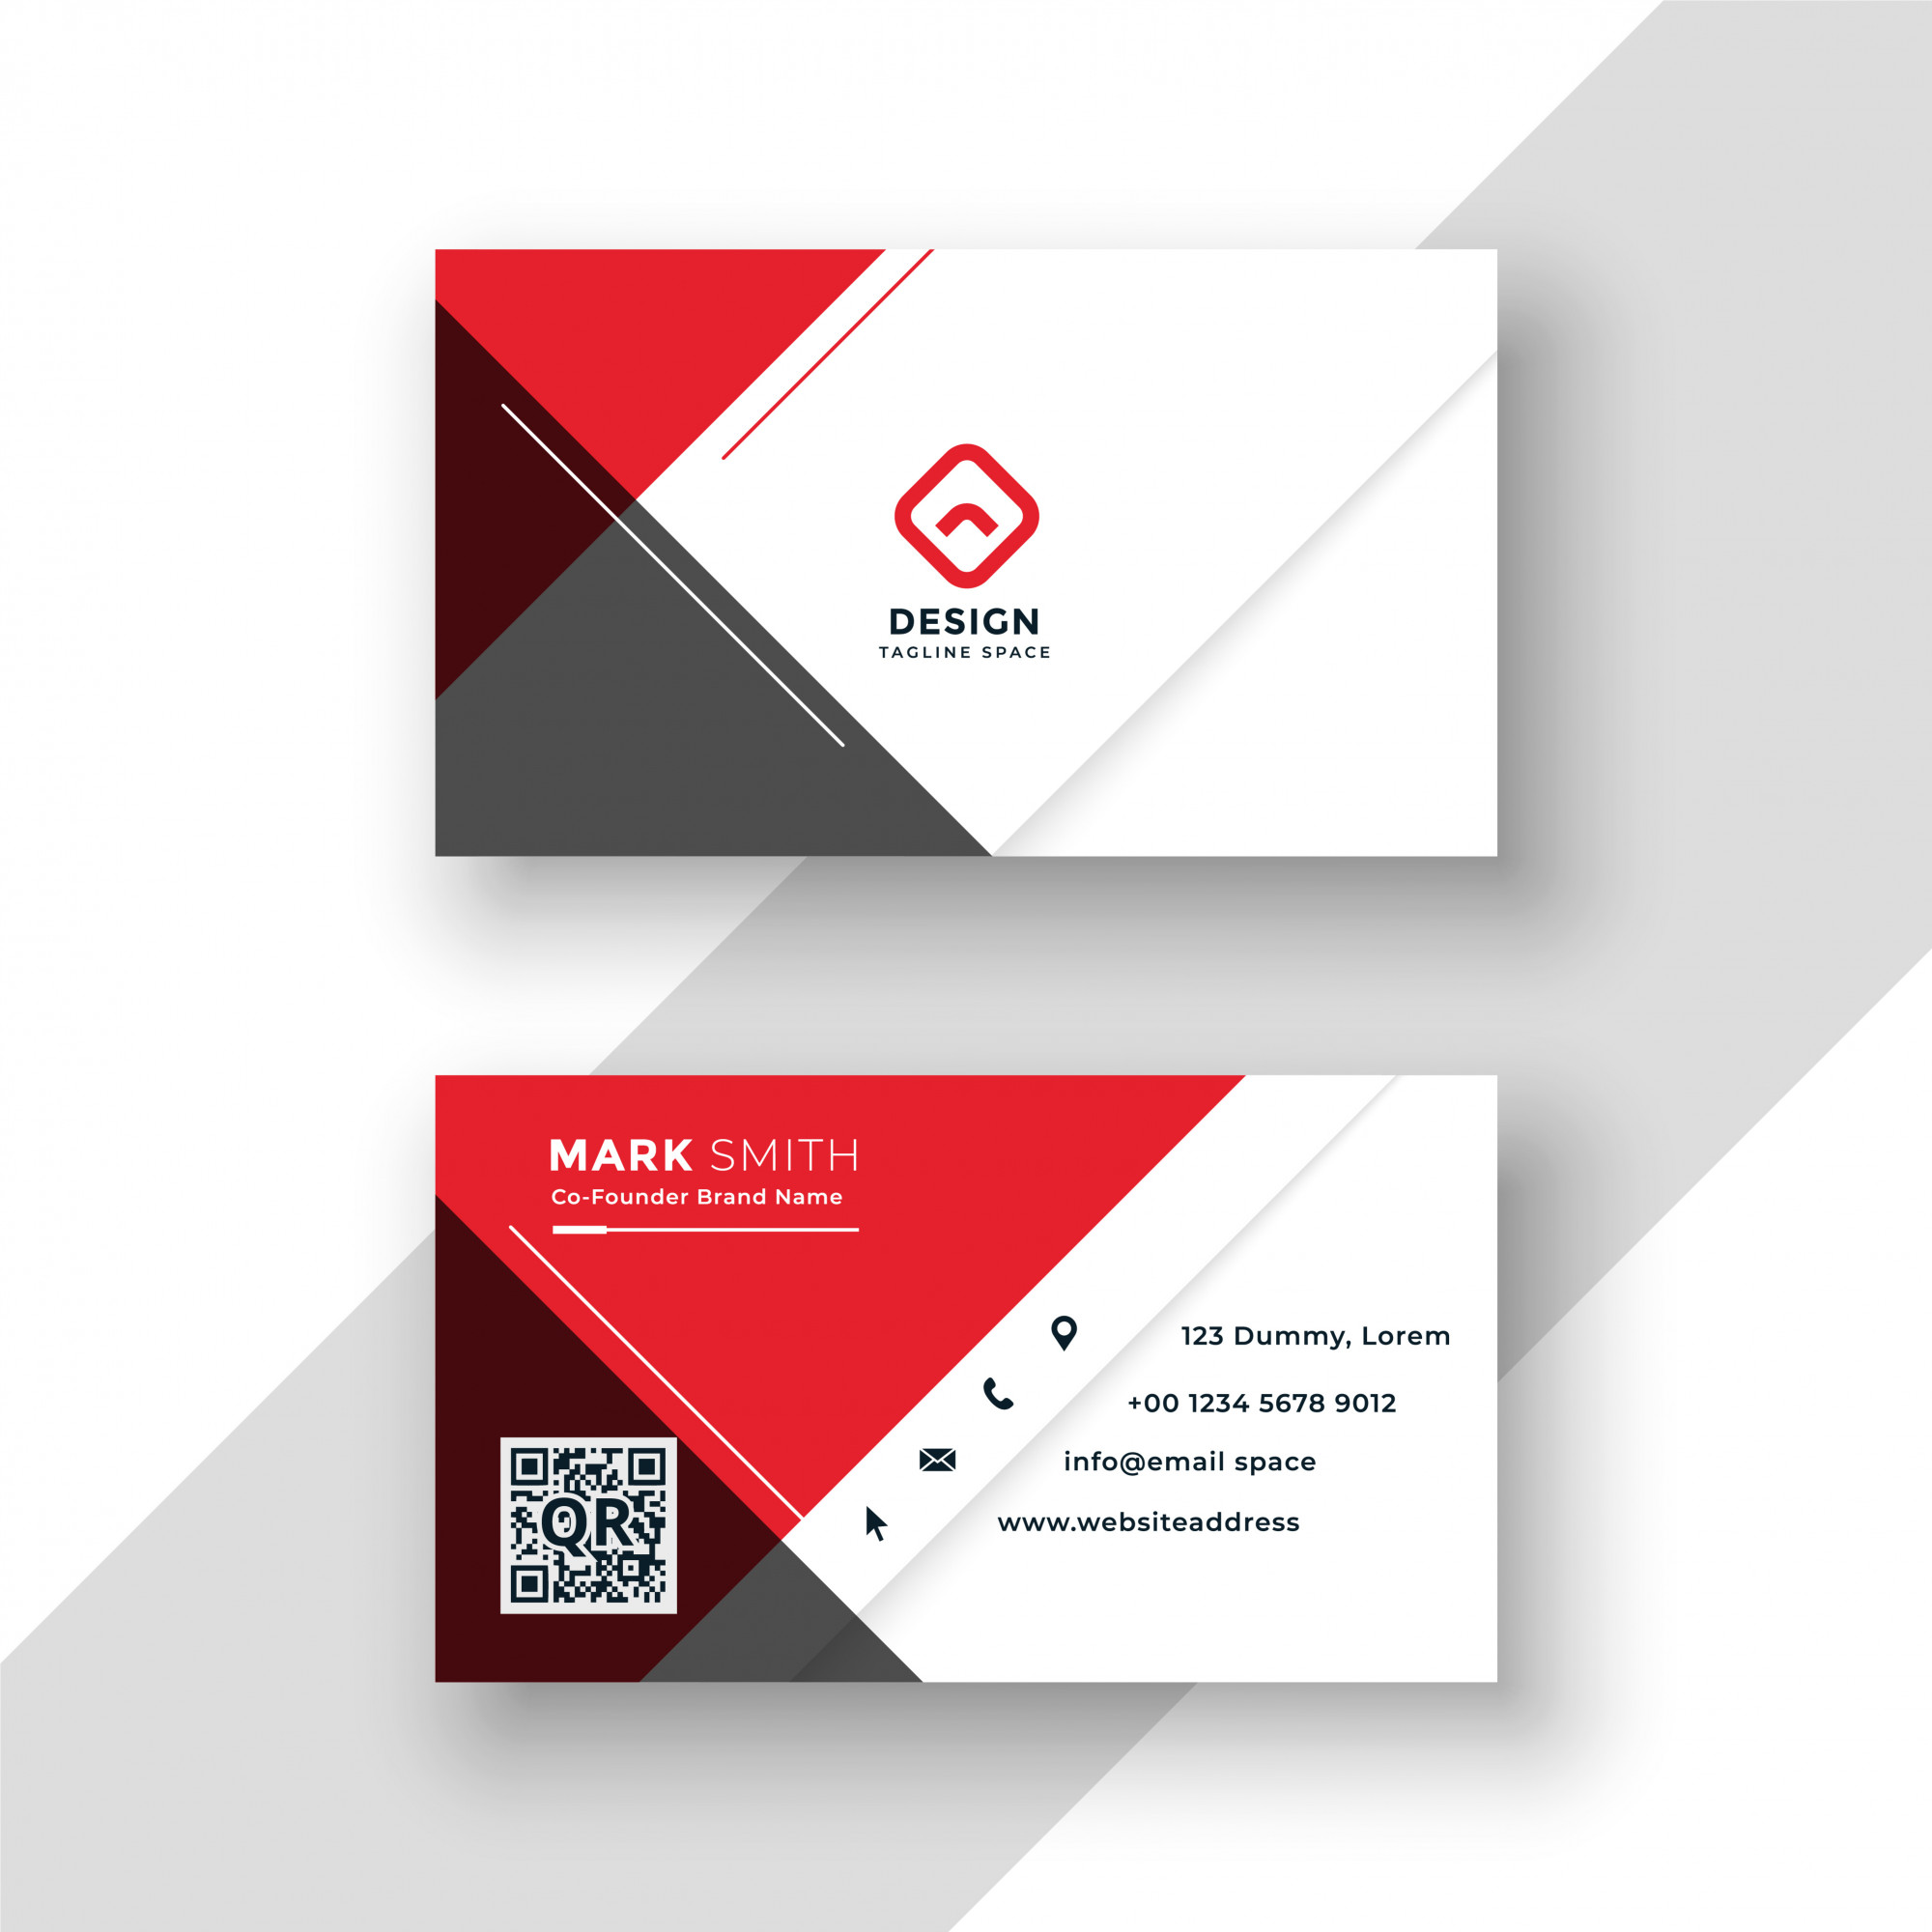 Minimal red business card template design